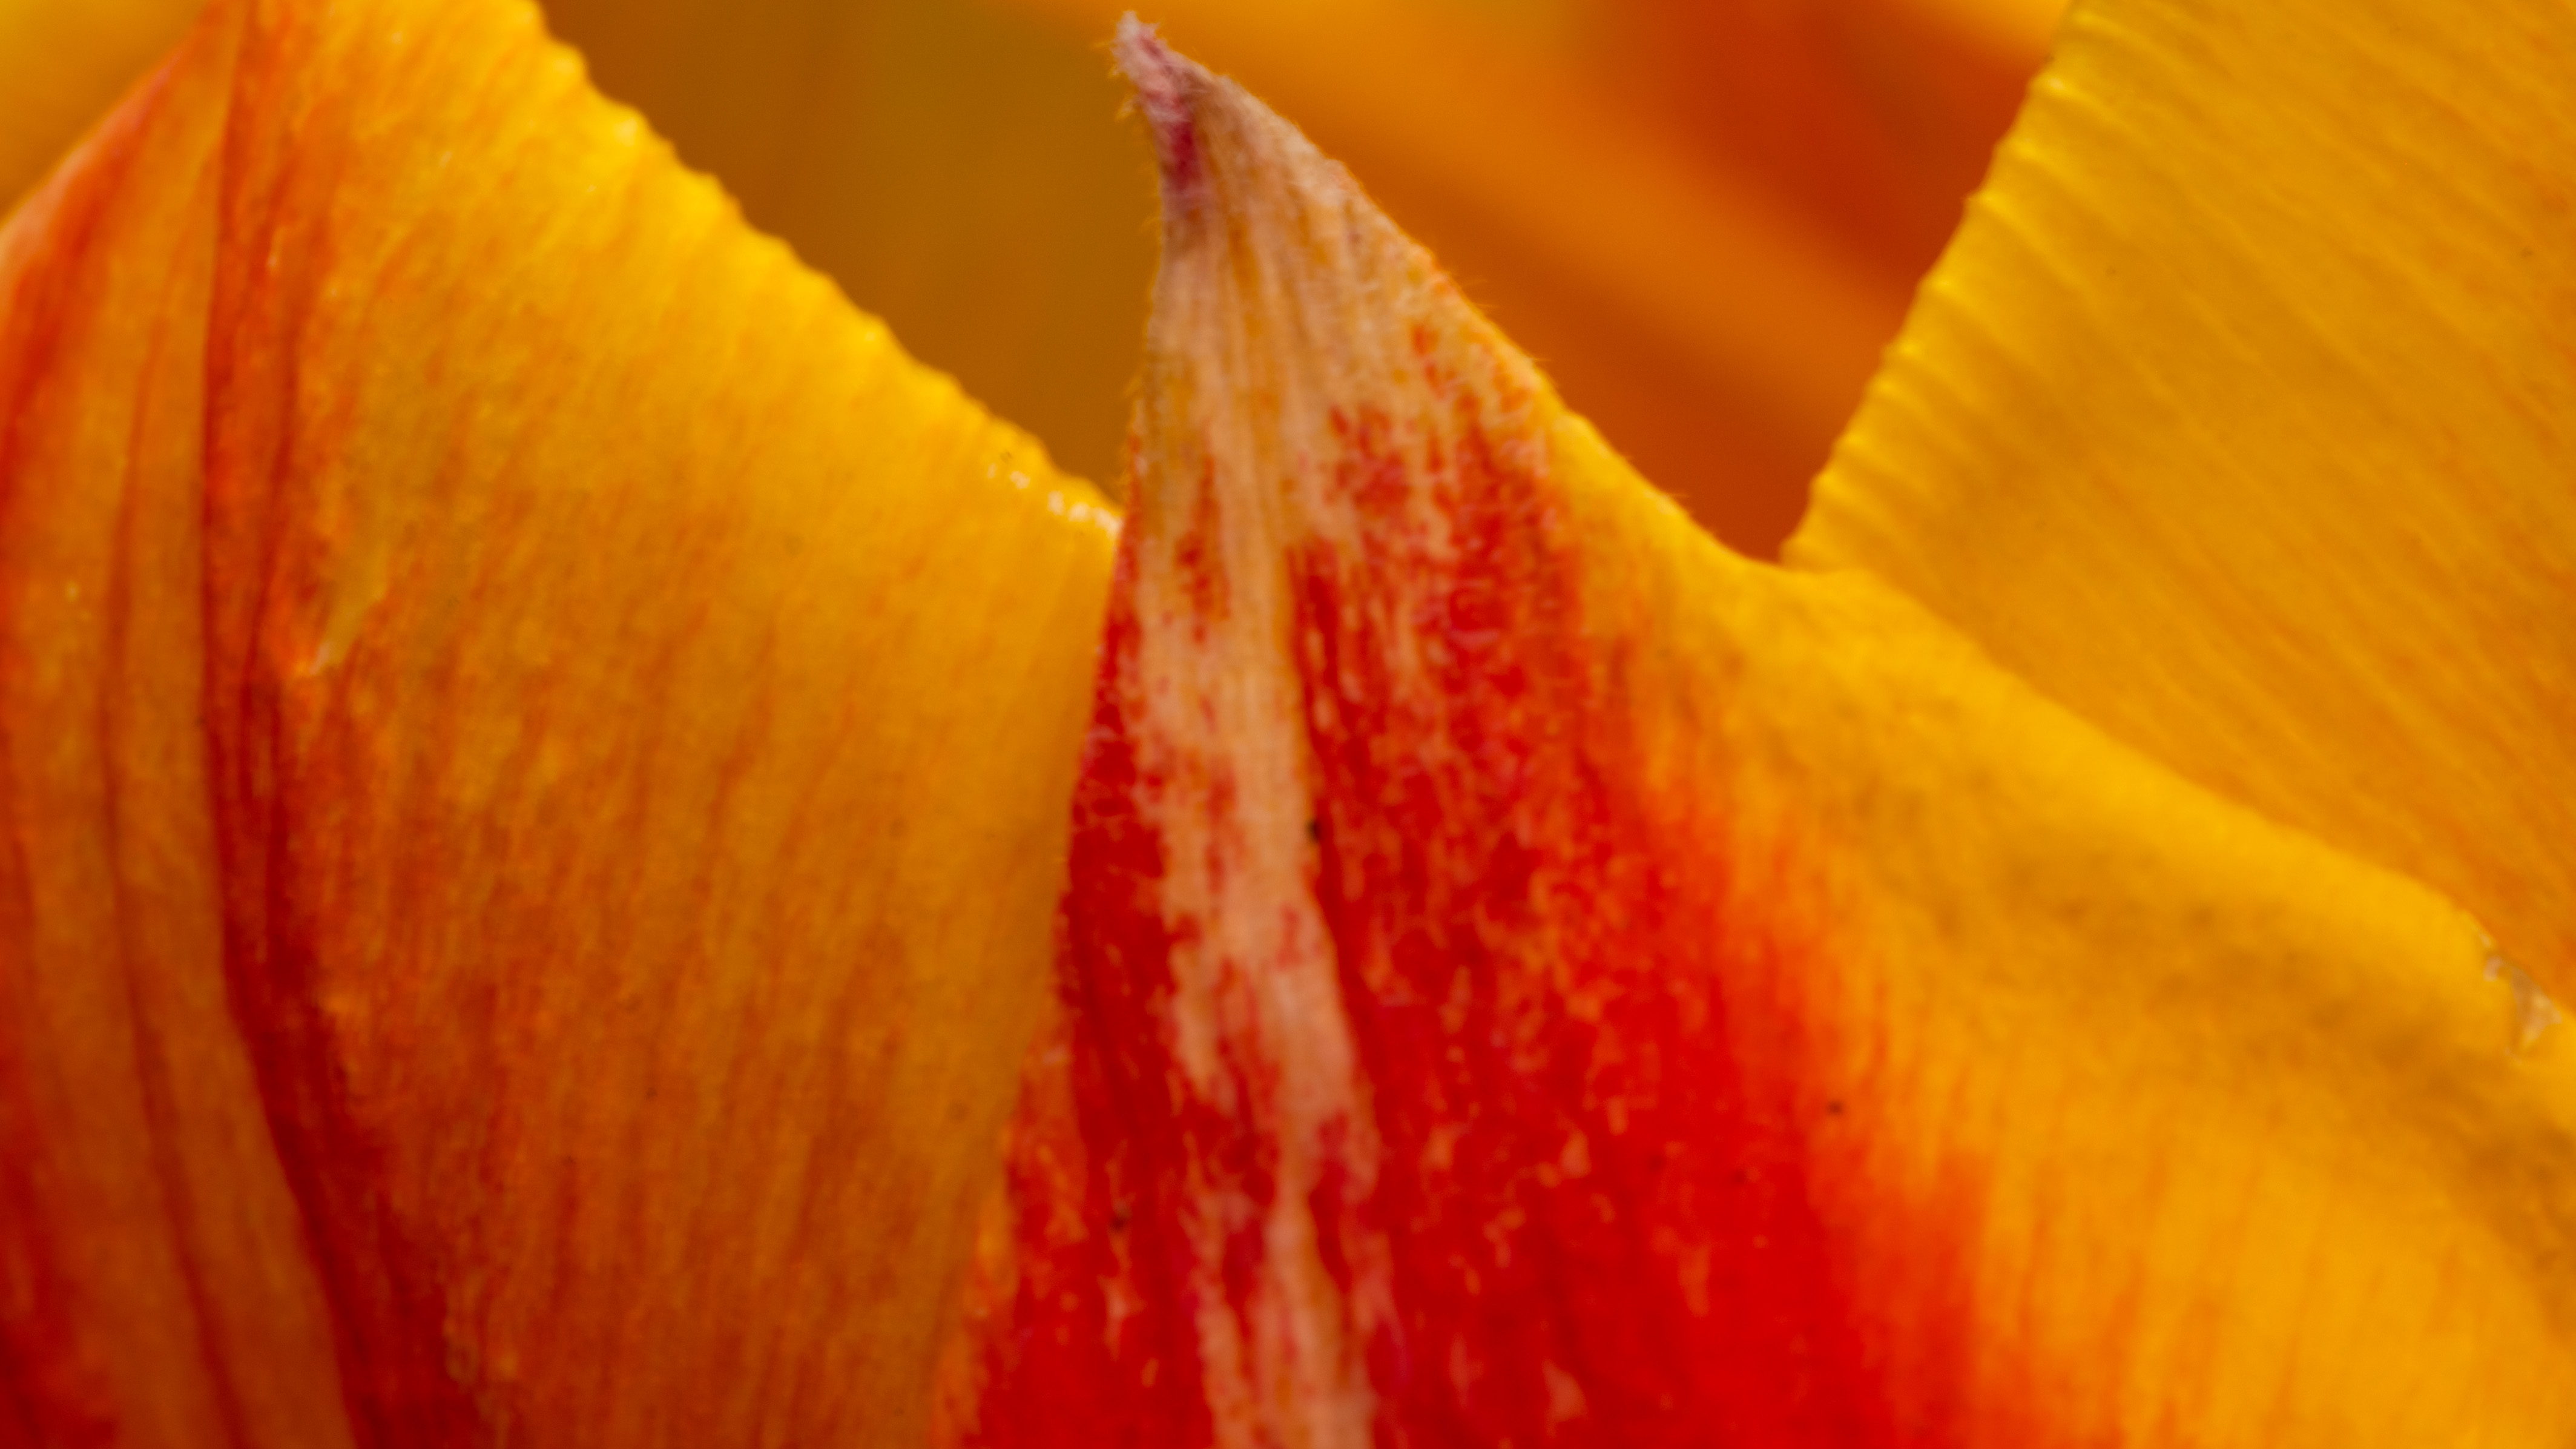 Morning tulip close up. Took advise from JG on shark tank. Tried to make an abstract but really liked the tulip points.